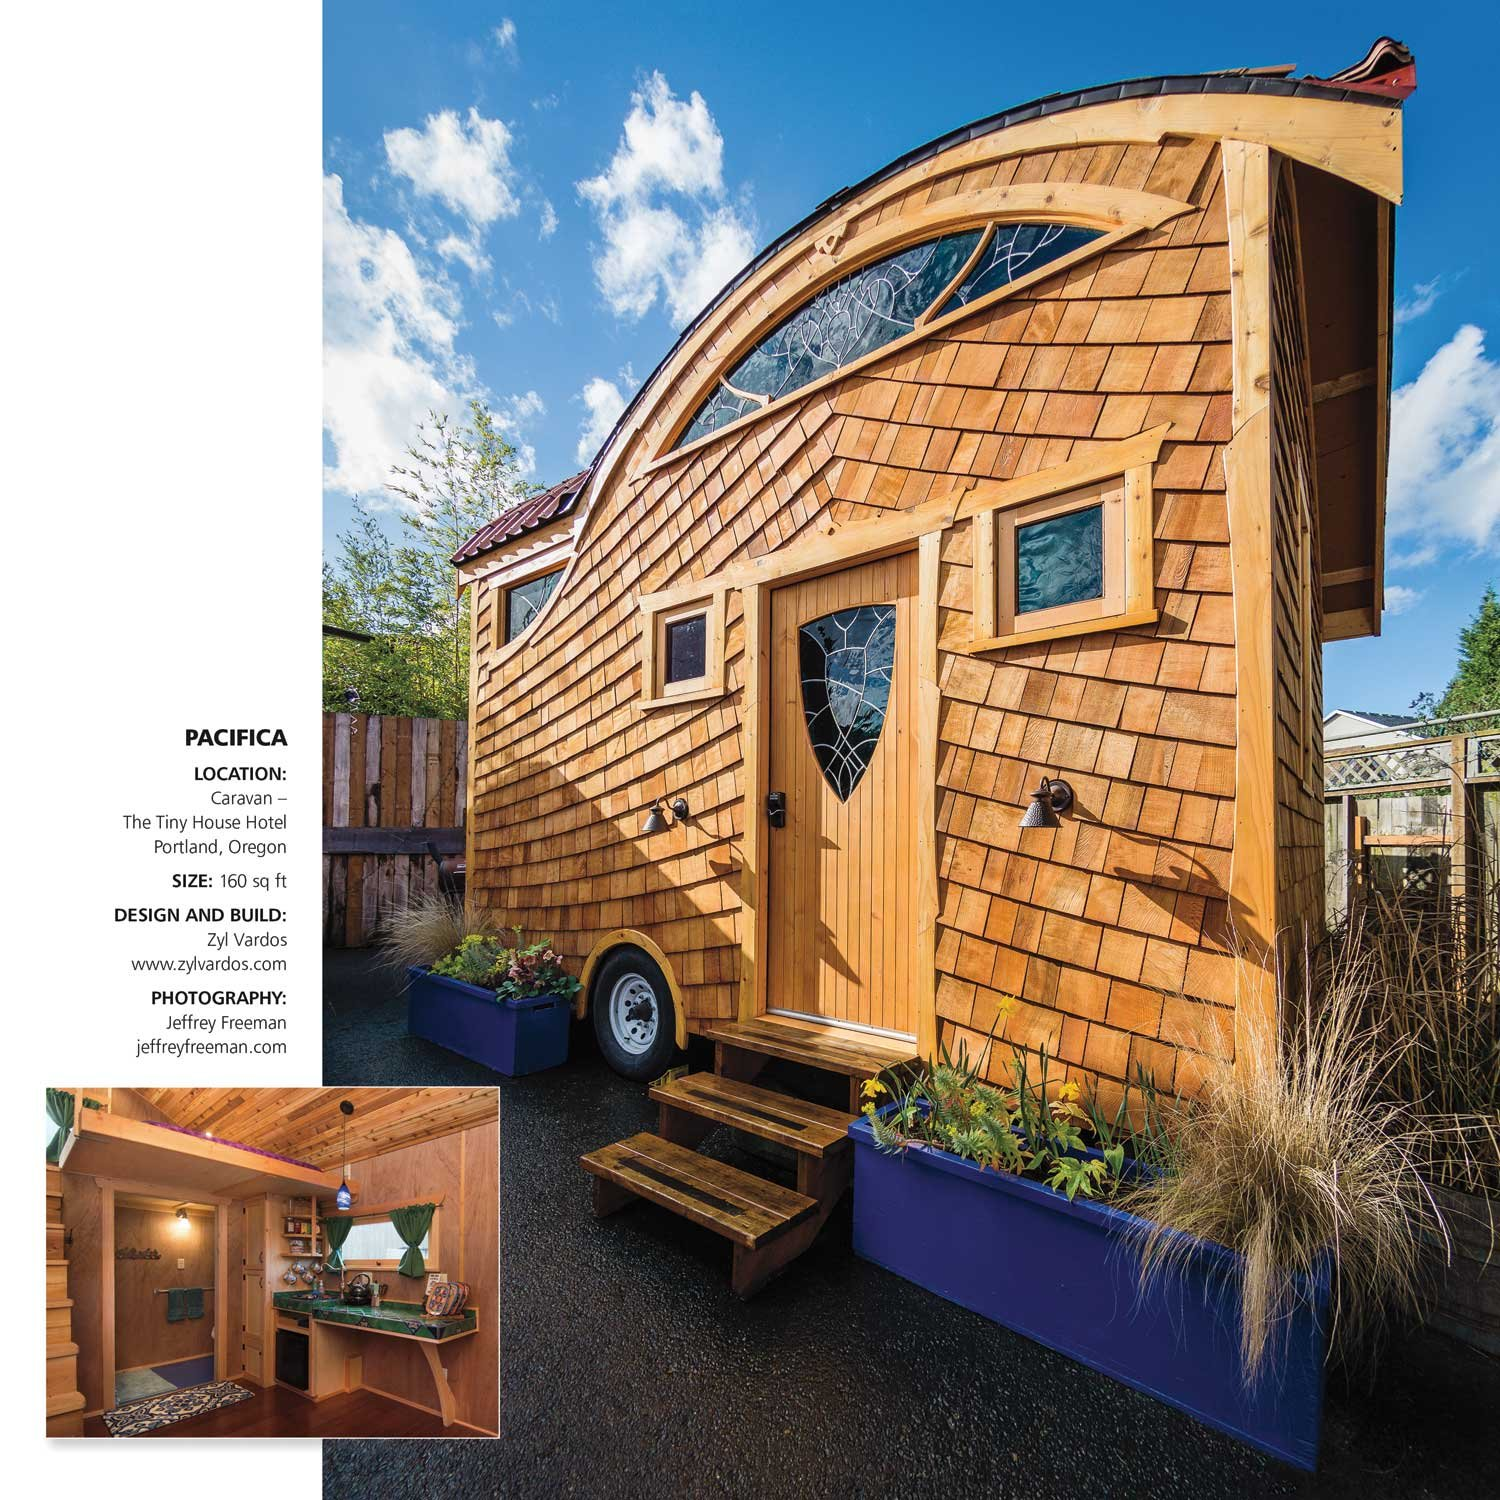 Tiny Houses 2018 Wall Calendar: Mindful Living, Small Spaces ...